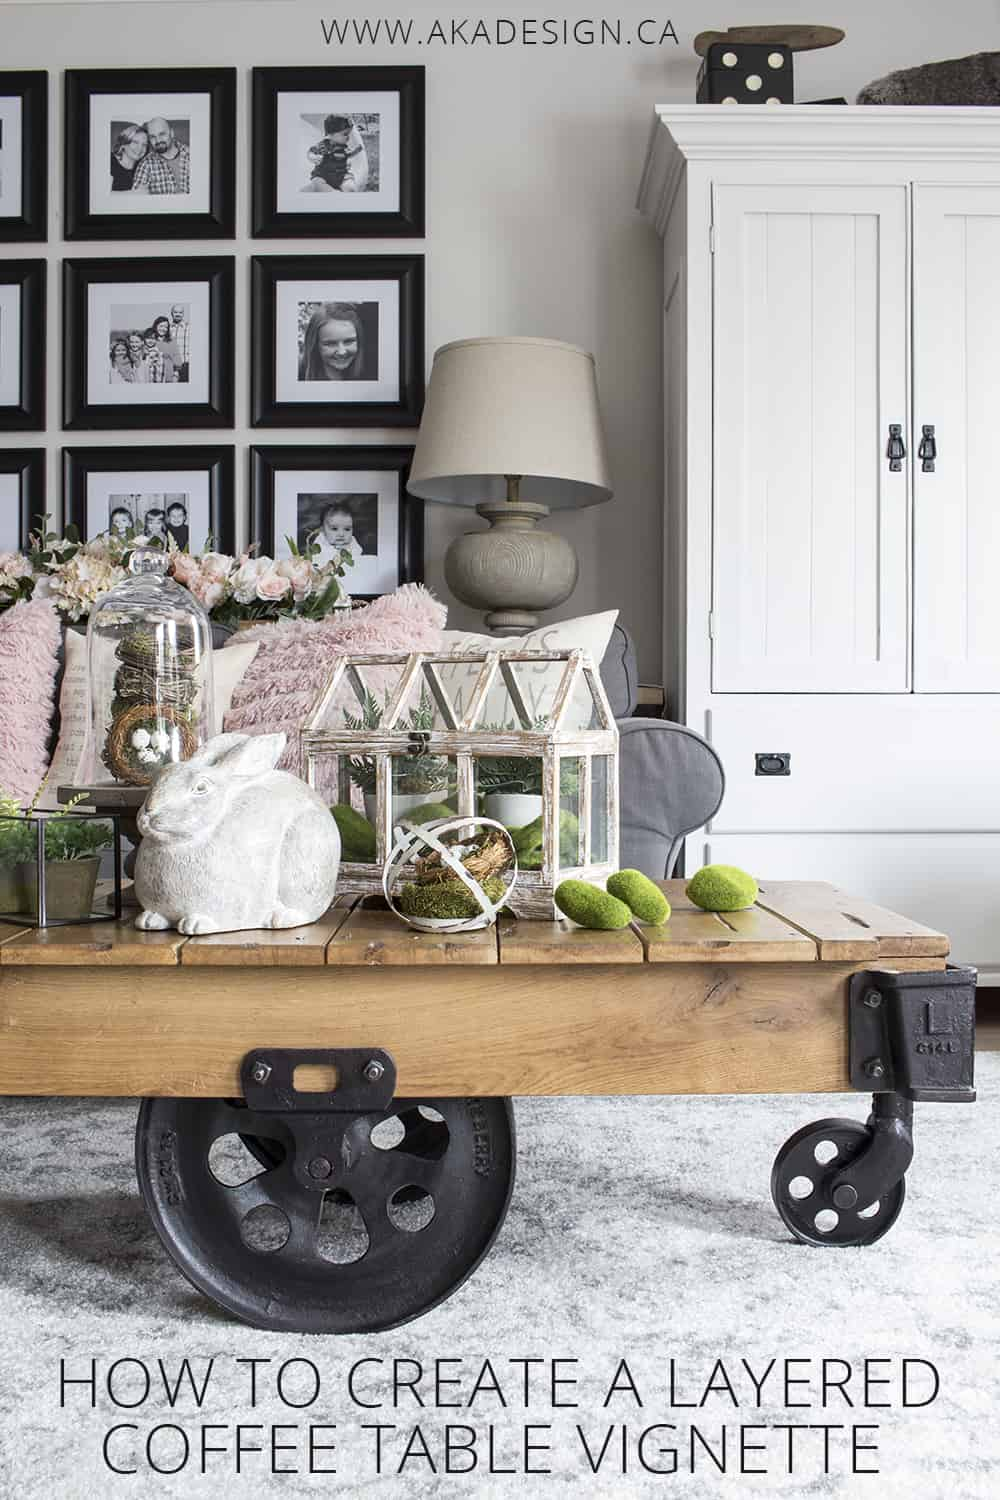 Vignettes create a designer-looking space, without the clutter a smattering of accessories can bring. Learn how to create a layered coffee table vignette.